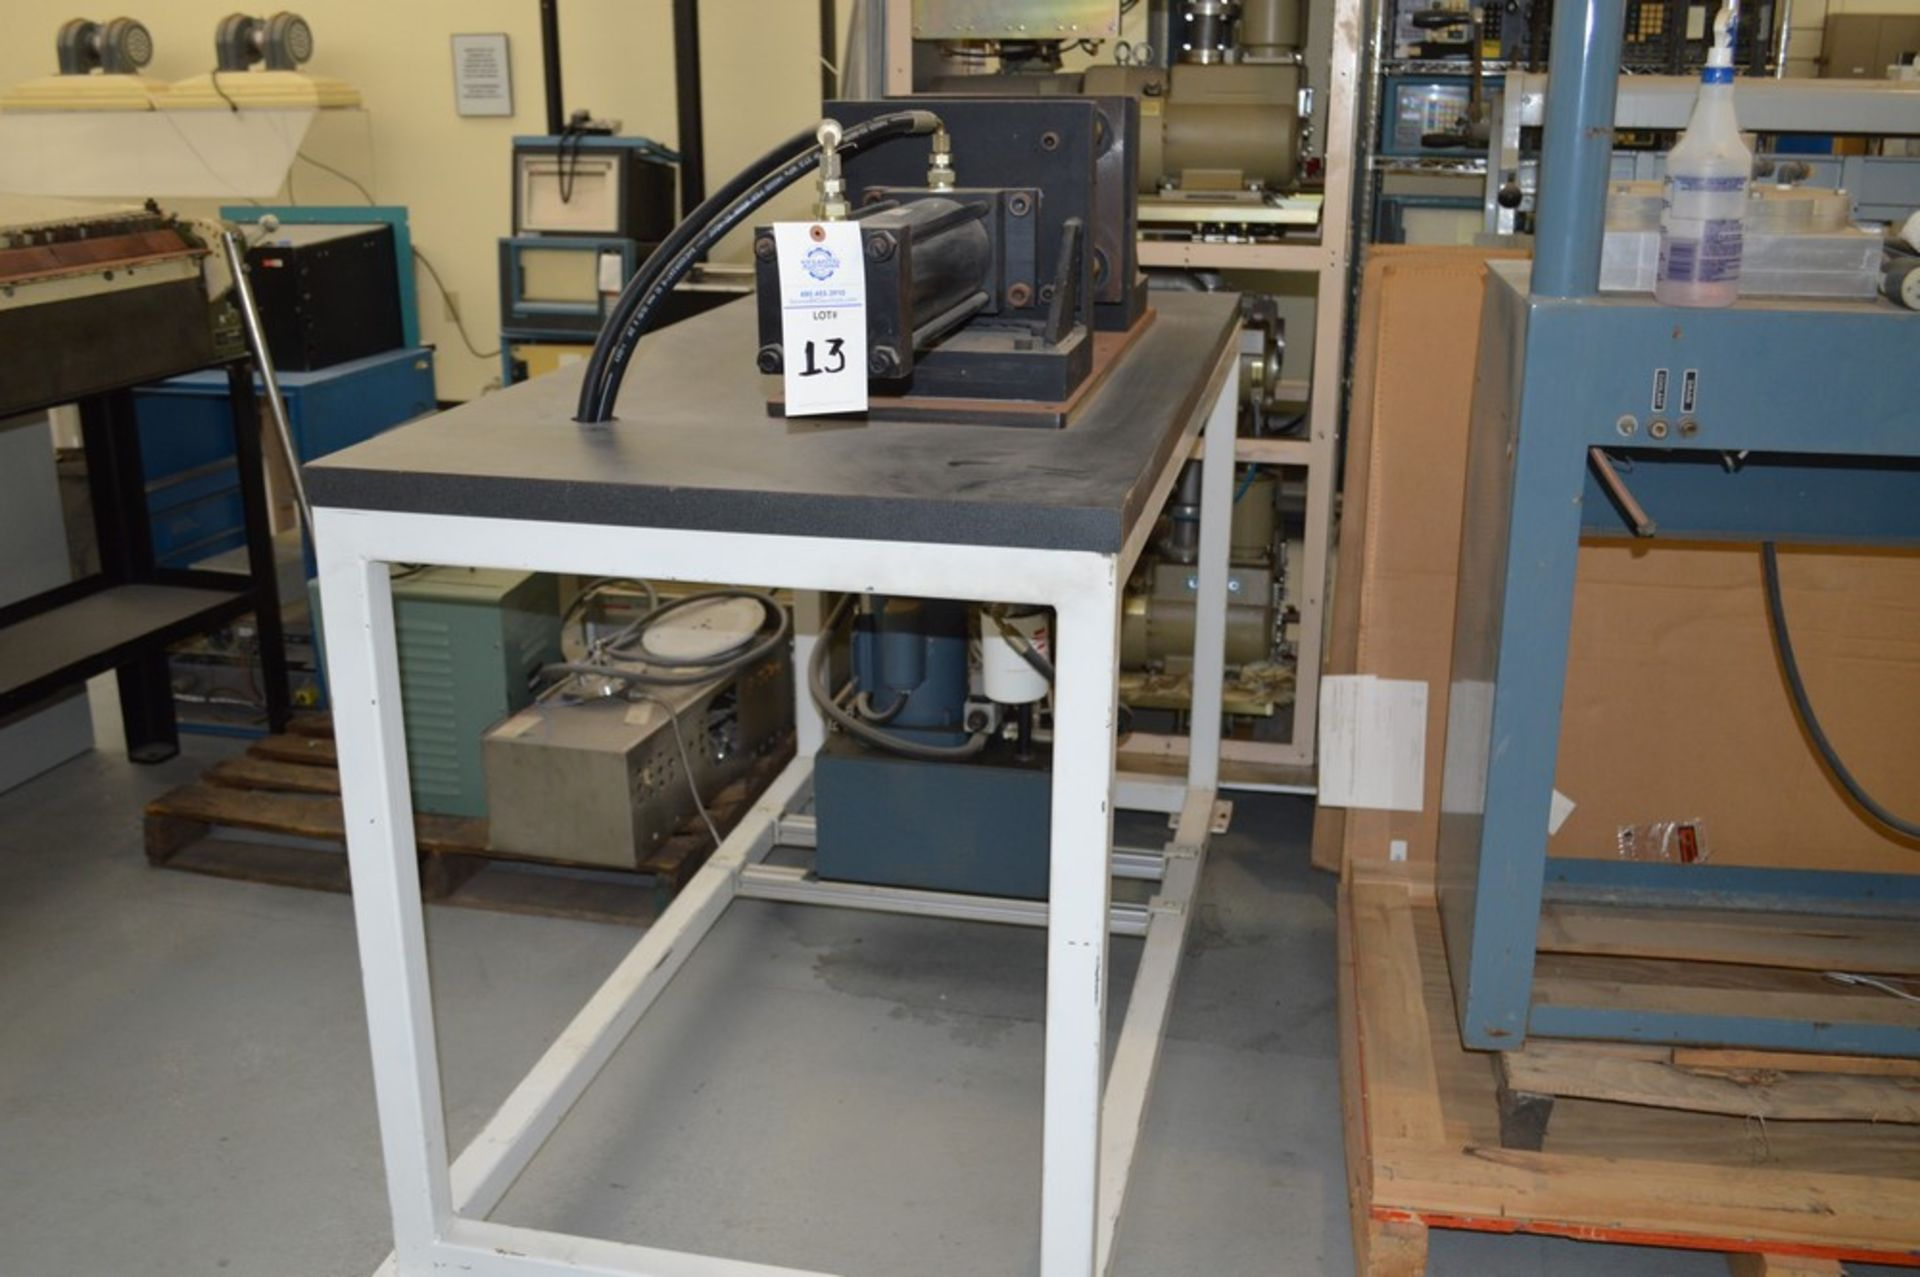 4 Post horizontal press with stand, 3000 psi, RAM speed controls